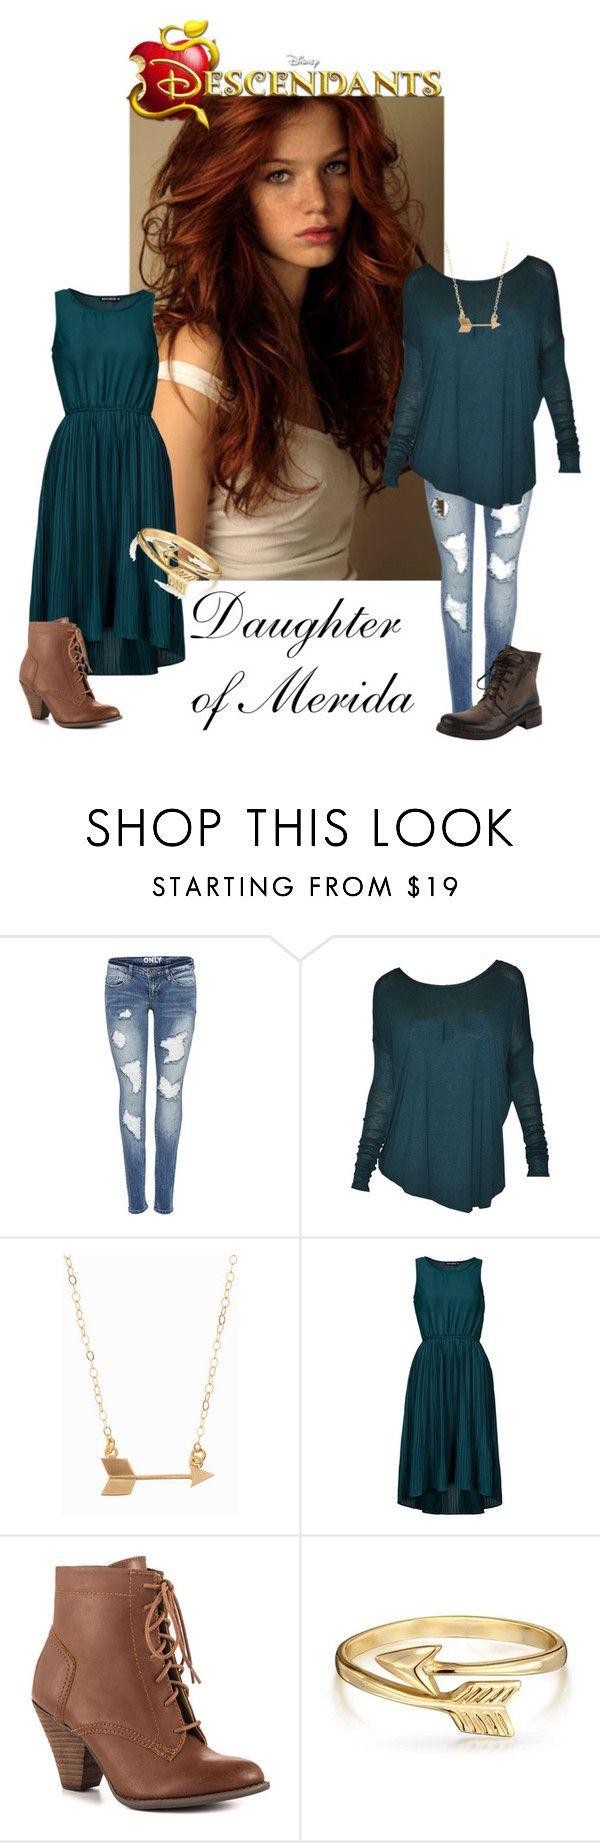 """Daughter of Merida"" by laceyleanne18 ❤ liked on Polyvore featuring Capelli New York, POL, Minnie Grace, Sally&Circle, Mojo Moxy and Bling Jewelry"